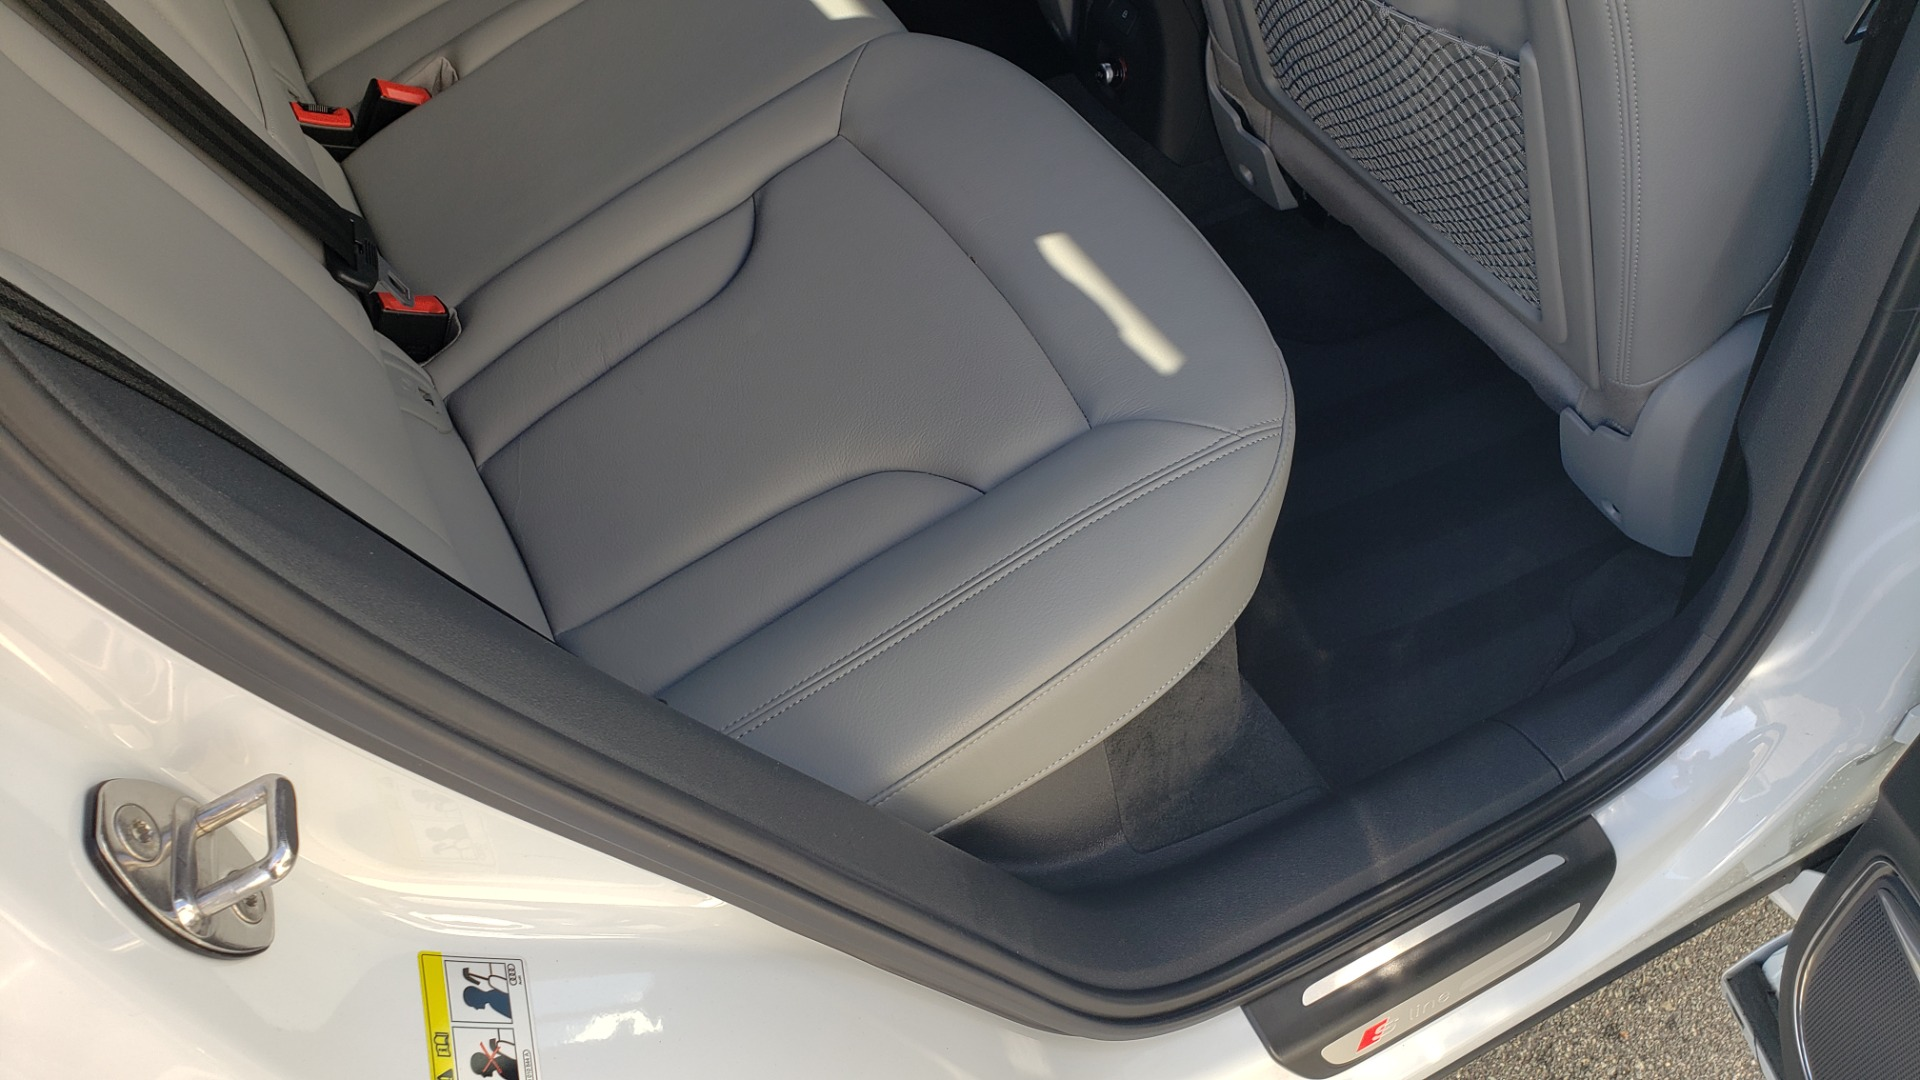 Used 2018 Audi Q3 PREMIUM PLUS 2.0T / SPORT PKG / NAV / BOSE / SUNROOF / REARVIEW for sale Sold at Formula Imports in Charlotte NC 28227 65